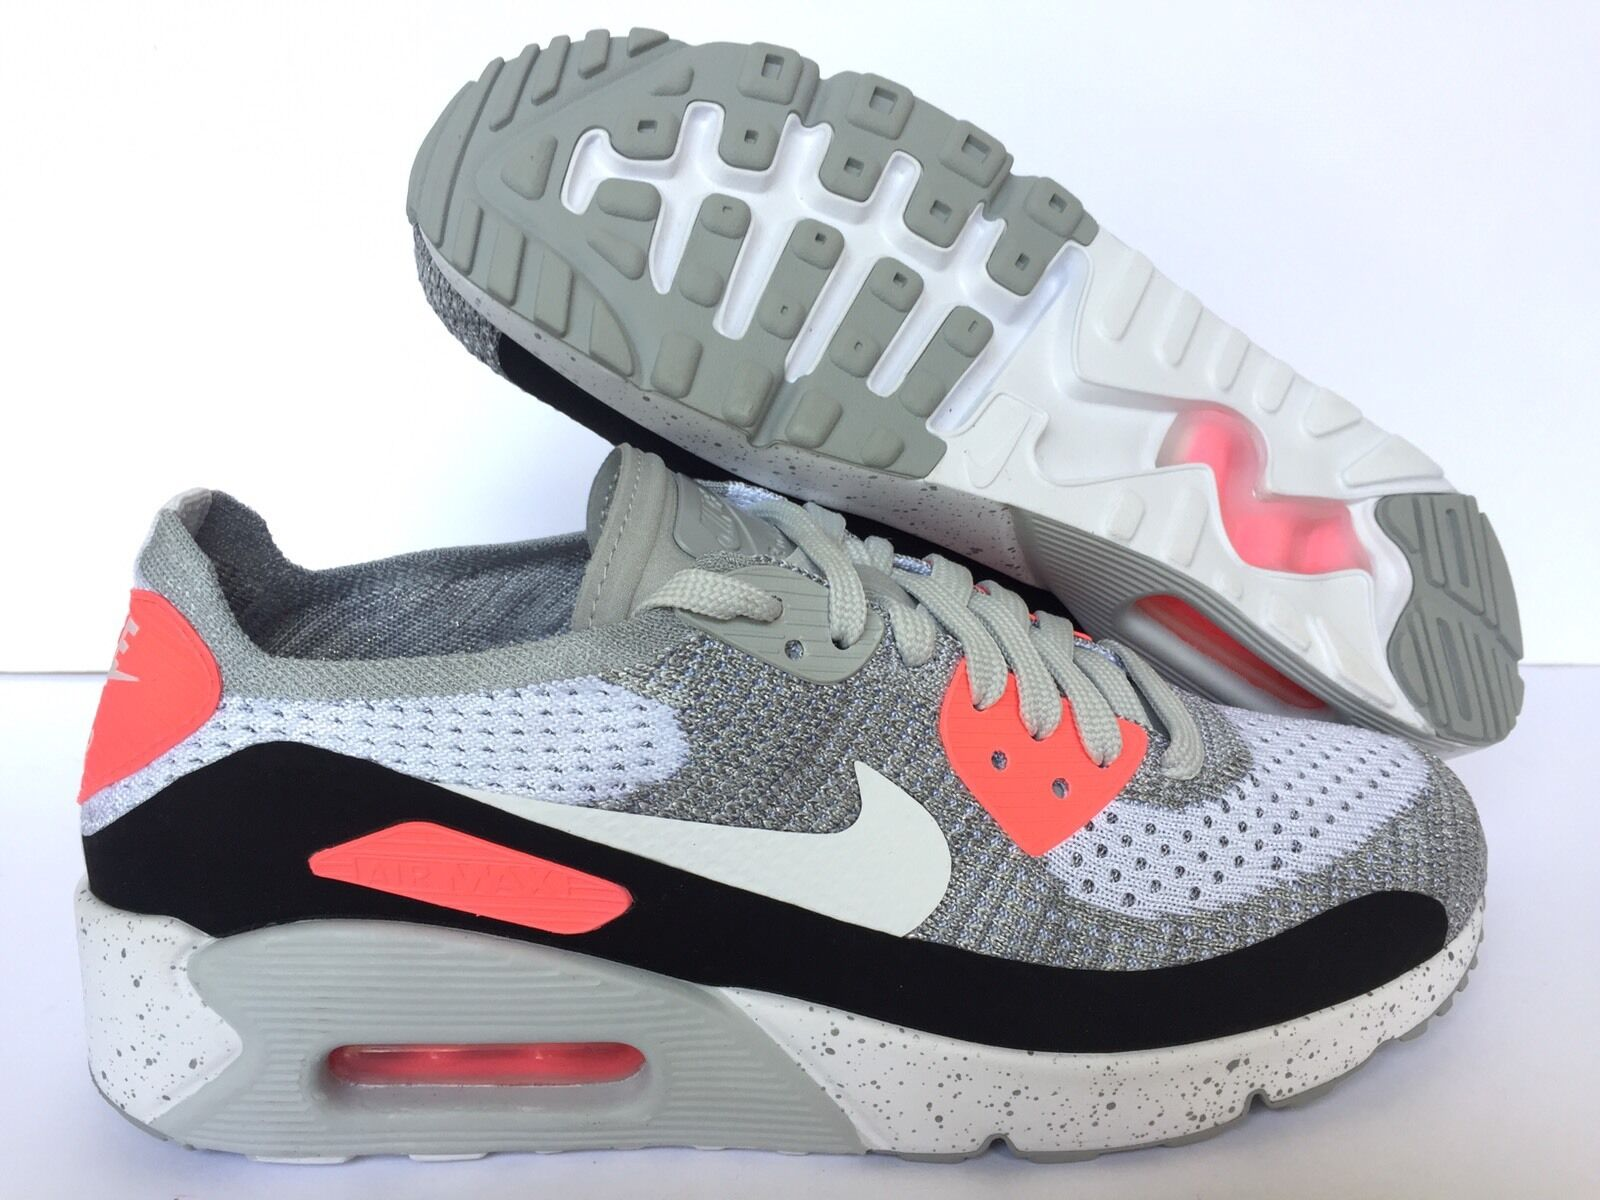 NIKEID AIR MAX NIKEiD  GREY-PINK-WHITE Price reduction US MEN Price reduction best-selling model of the brand